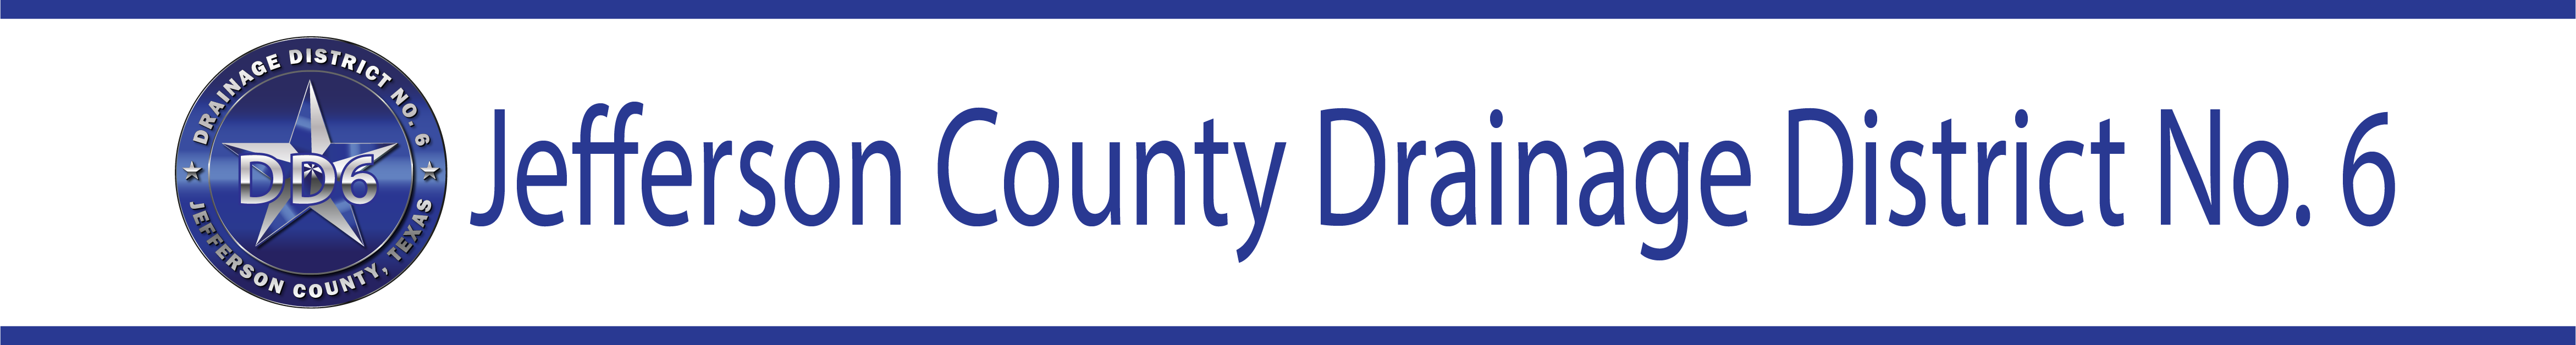 Jefferson County Drainage District No 6